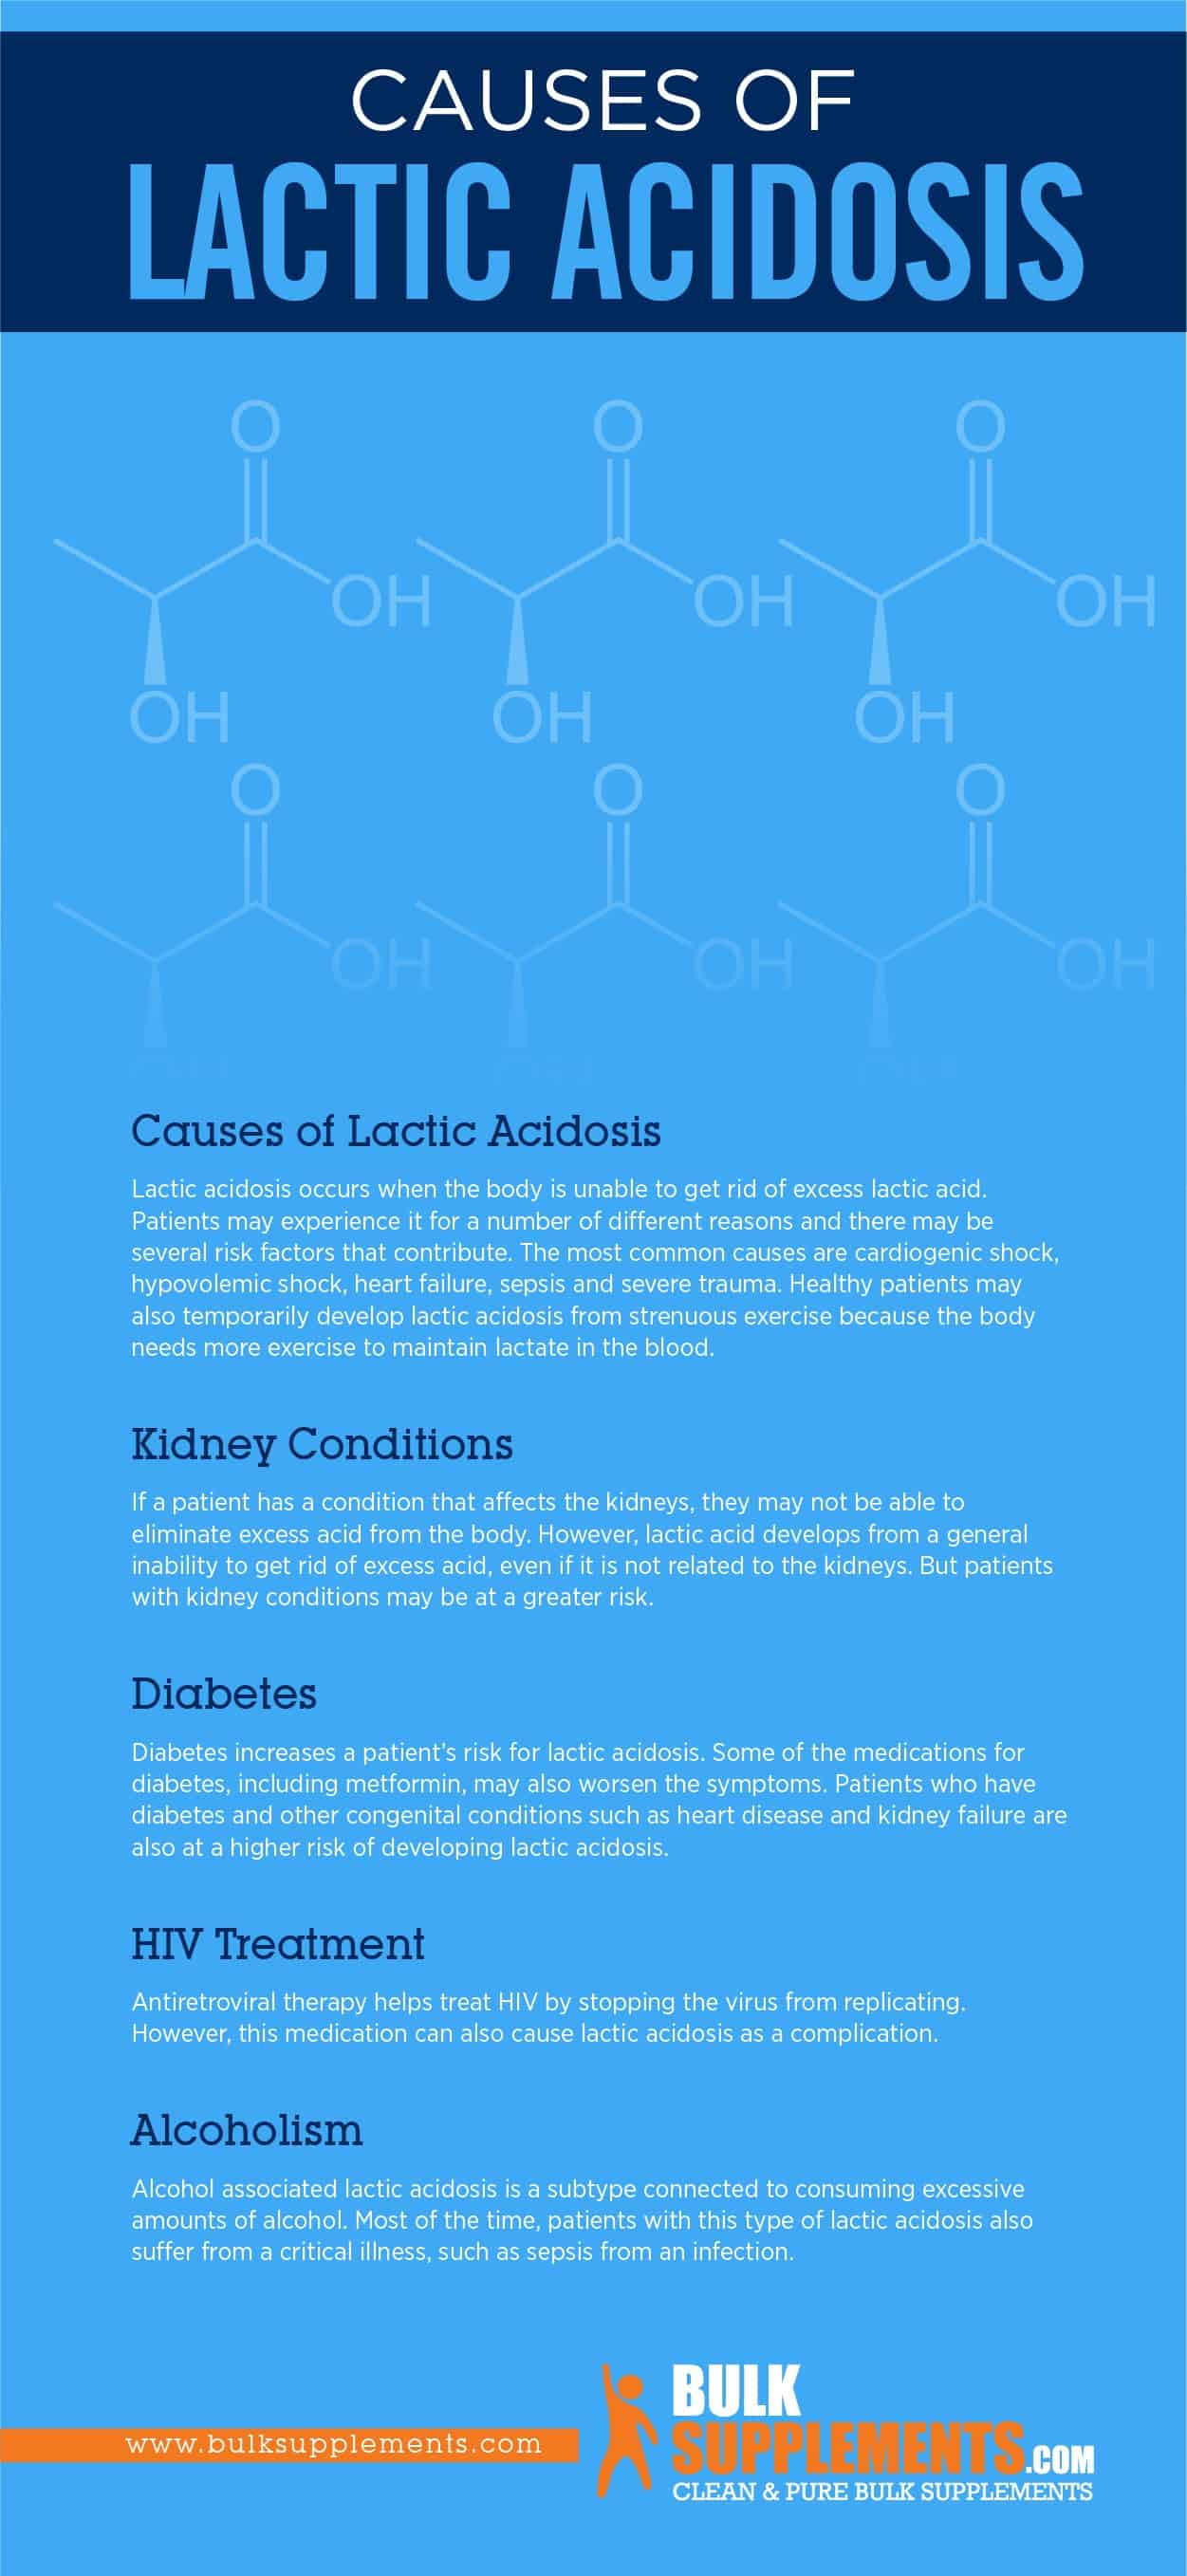 Causes of Lactic Acidosis